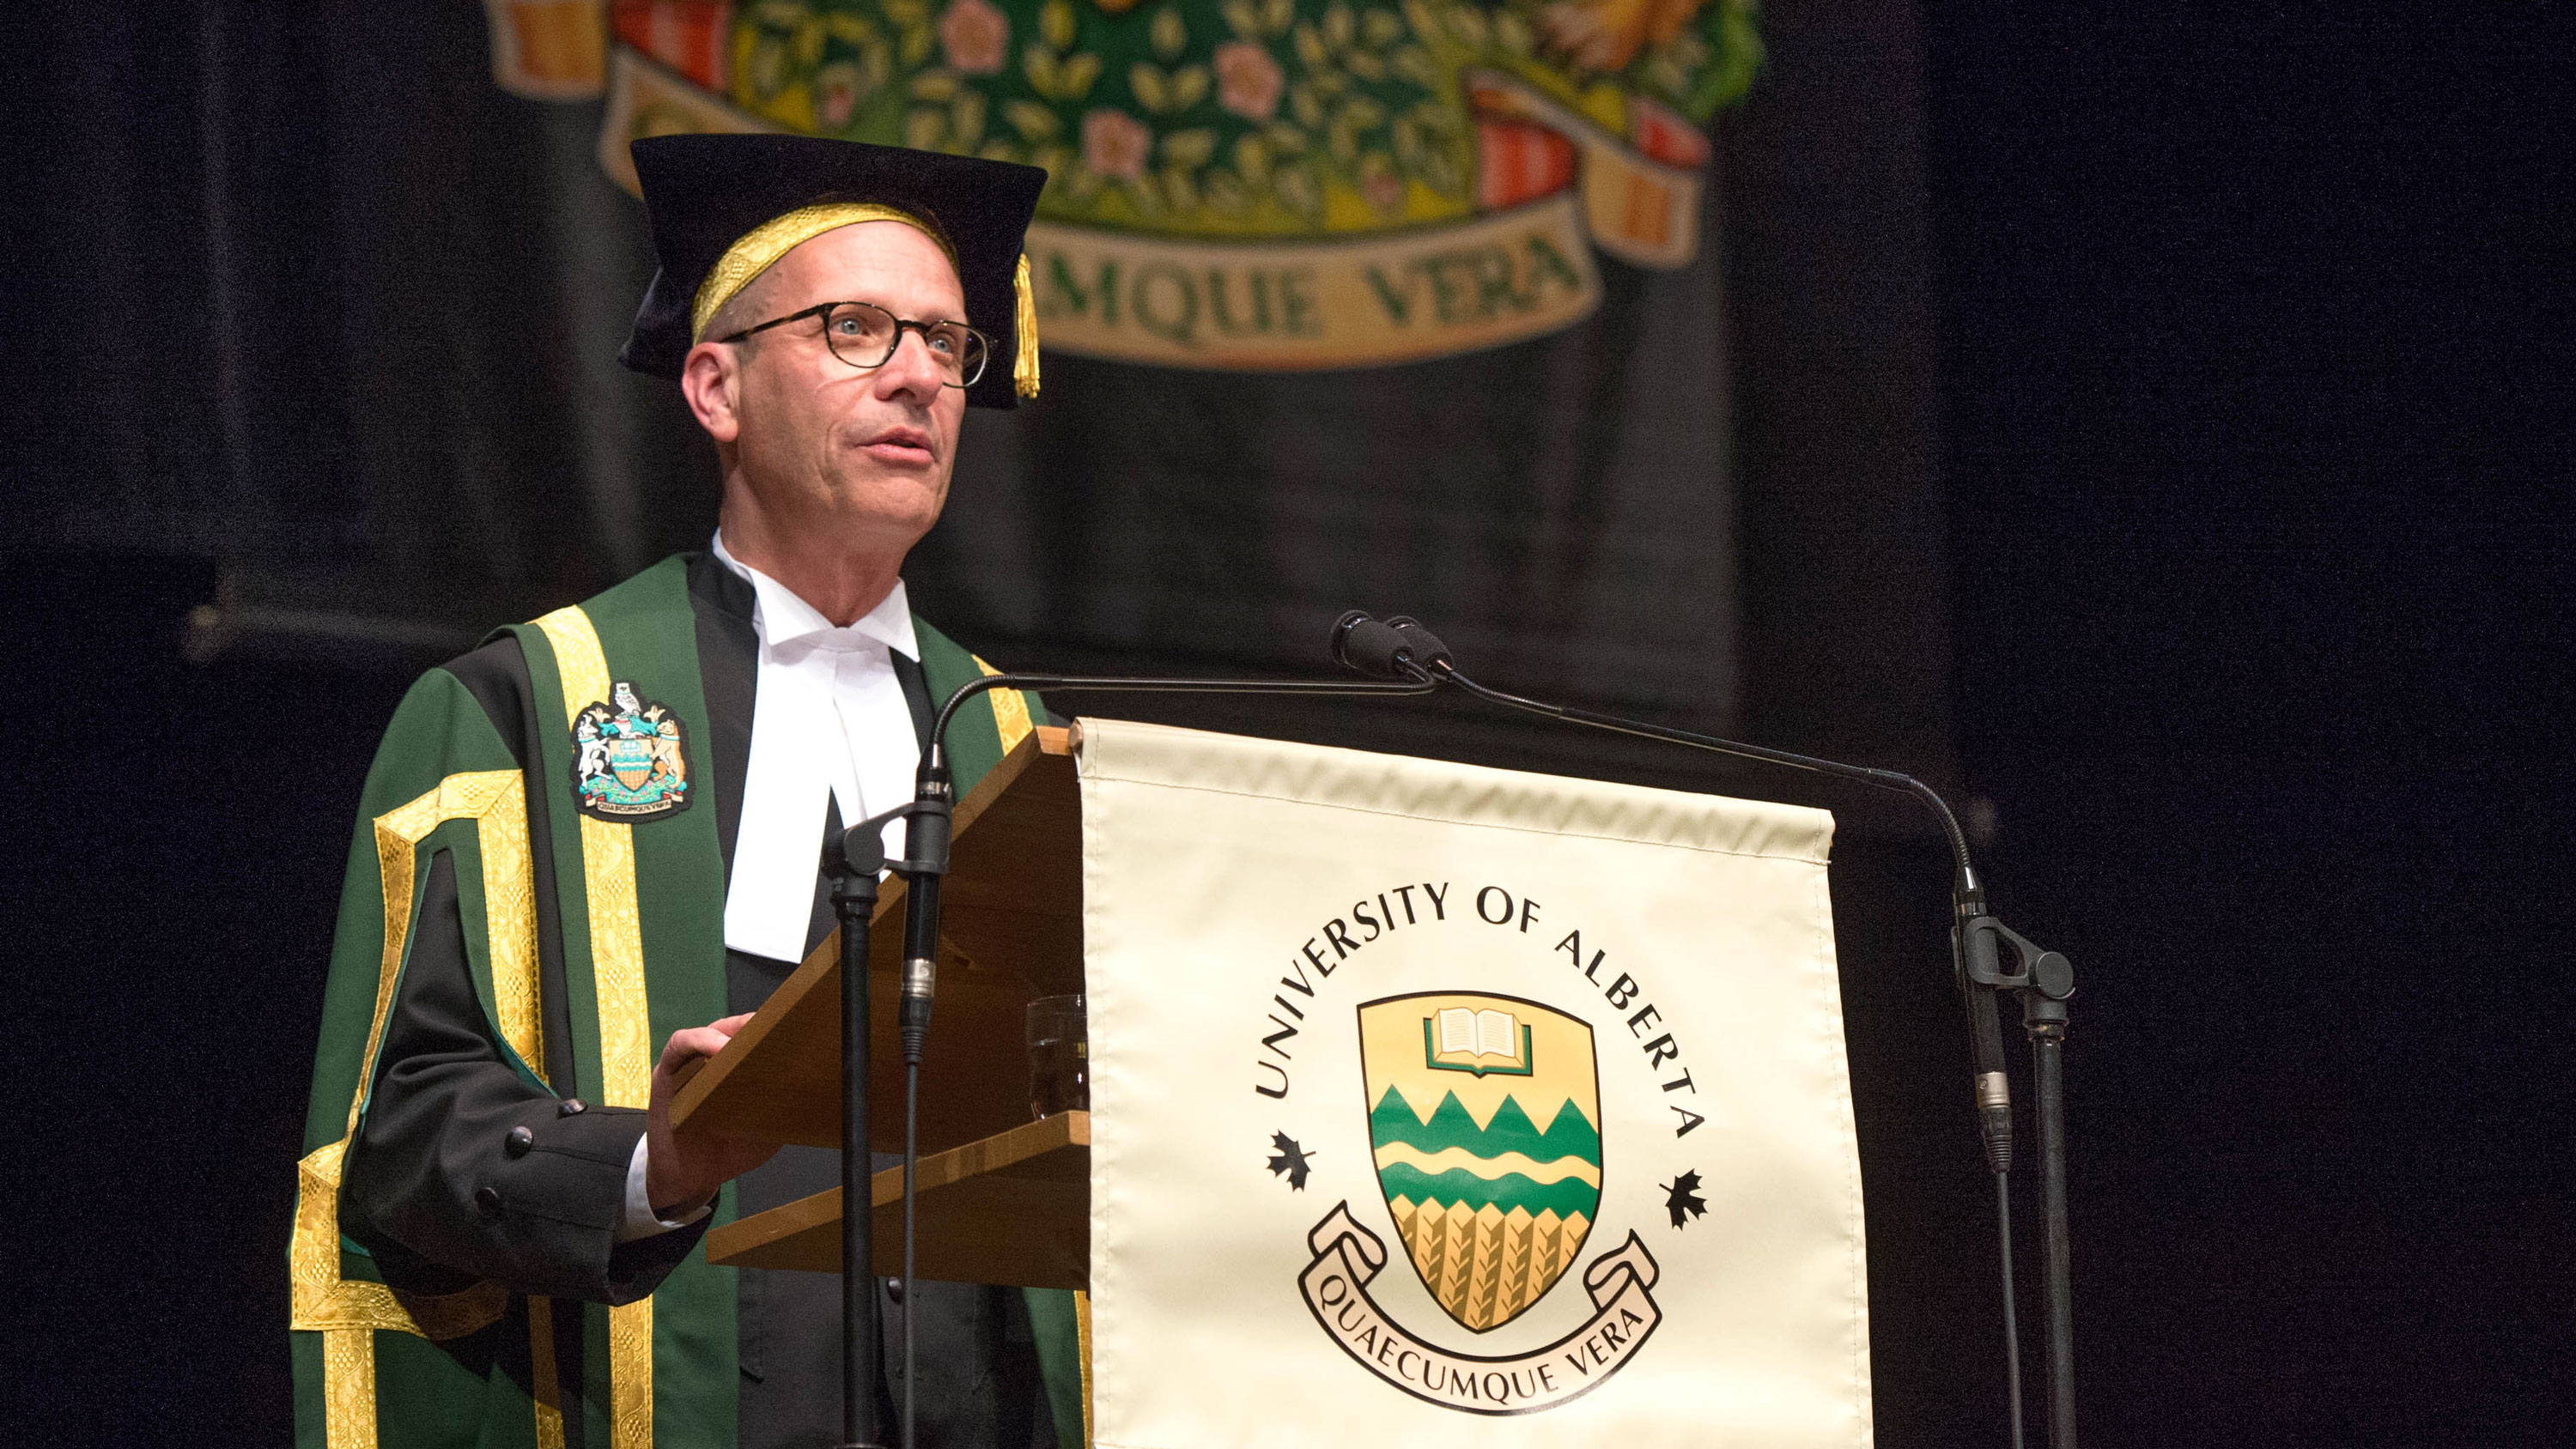 Photo of Douglas Stollery, Former U of A chancellor and alumnus